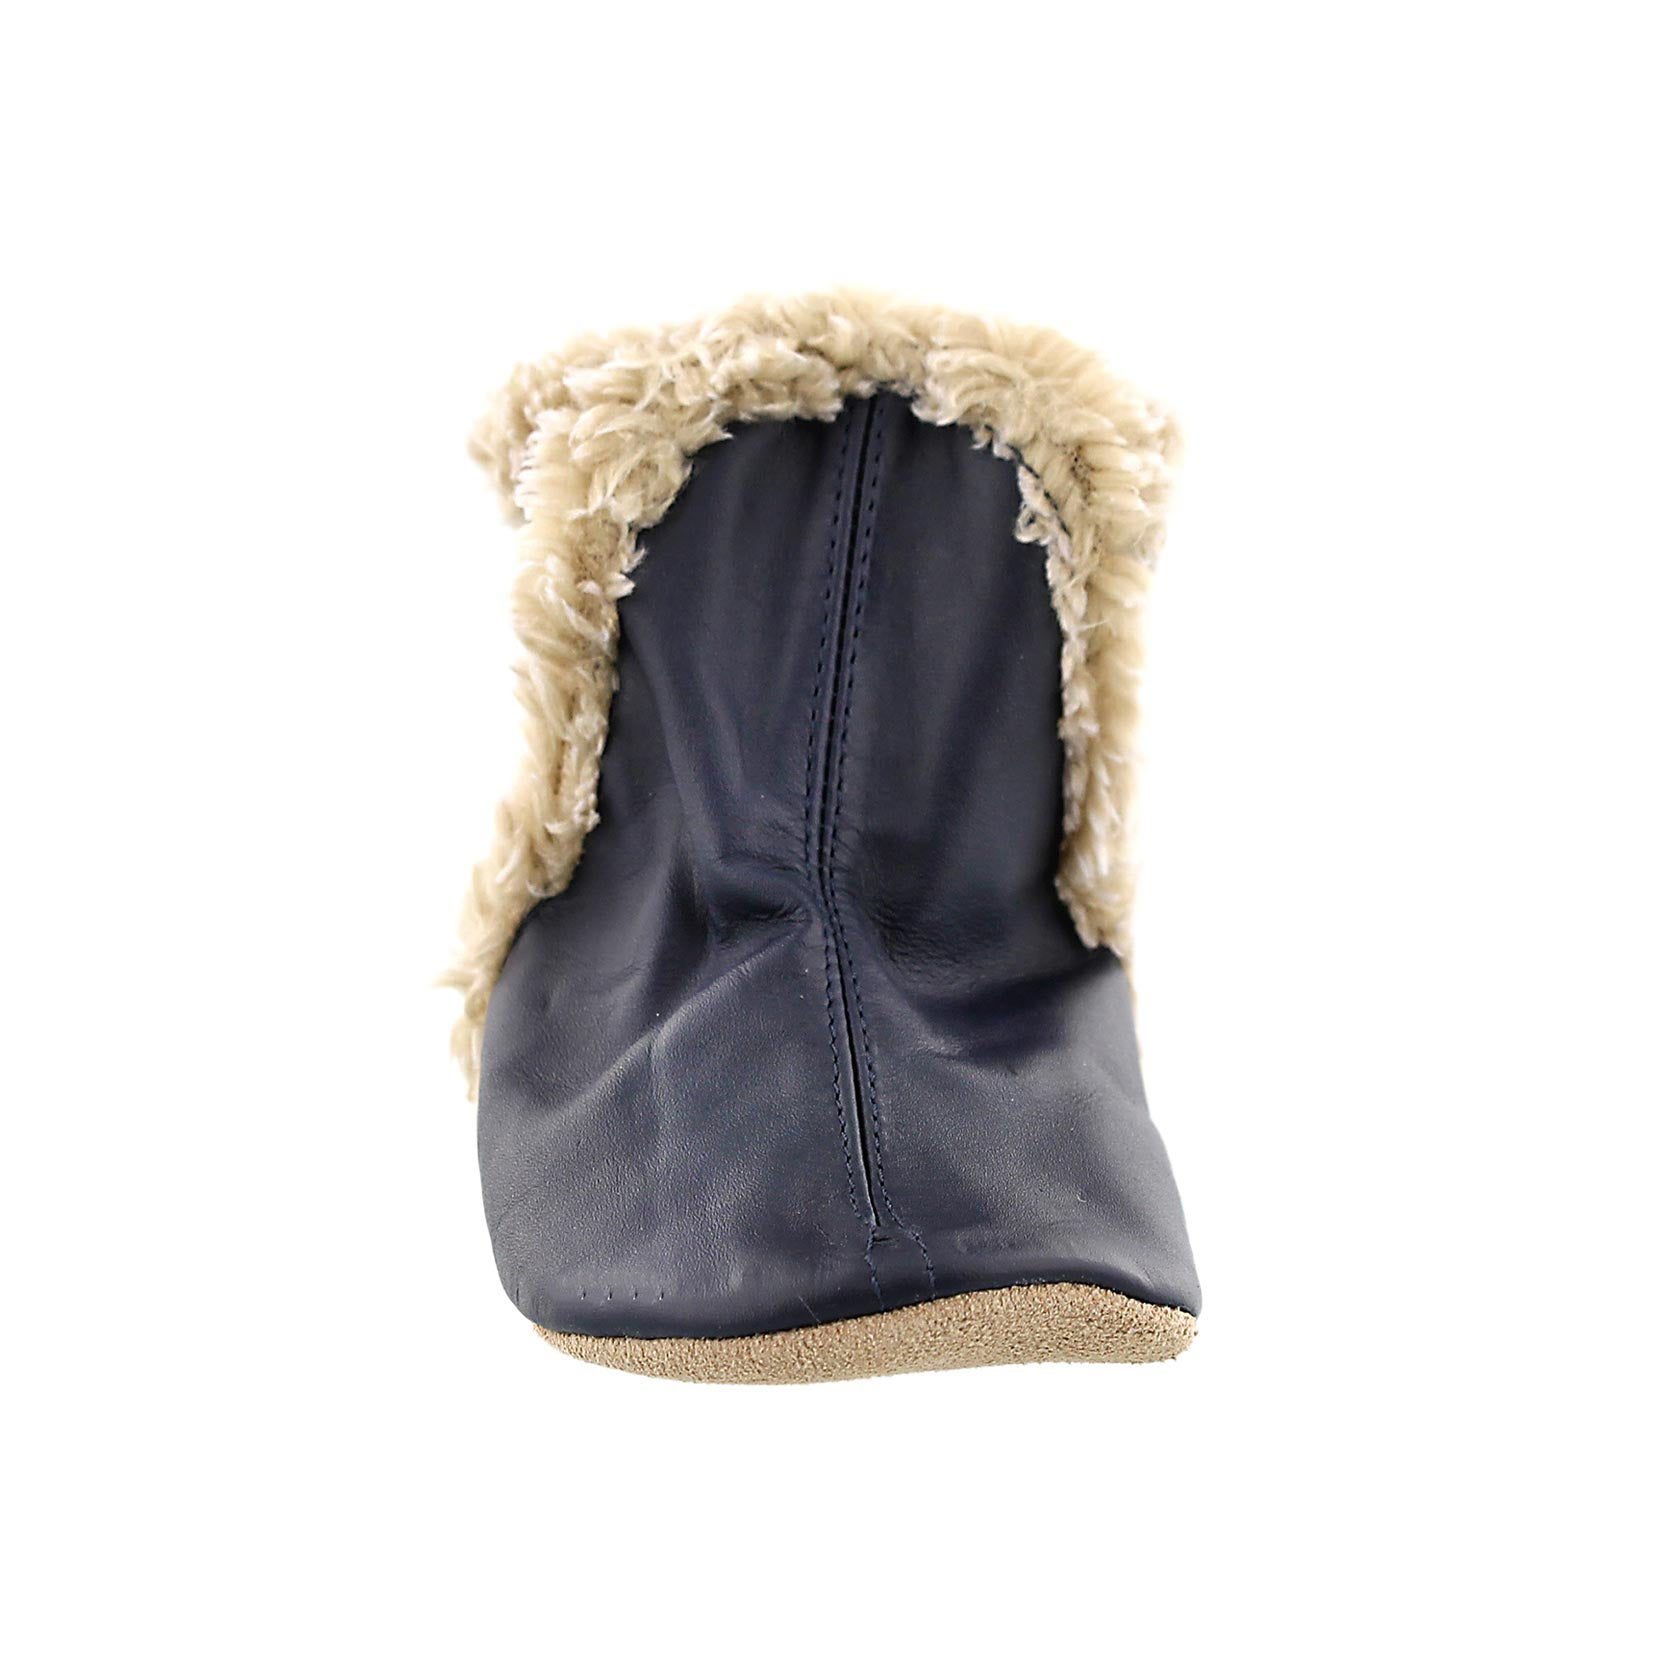 Inf Classic Bootie navy soft soles